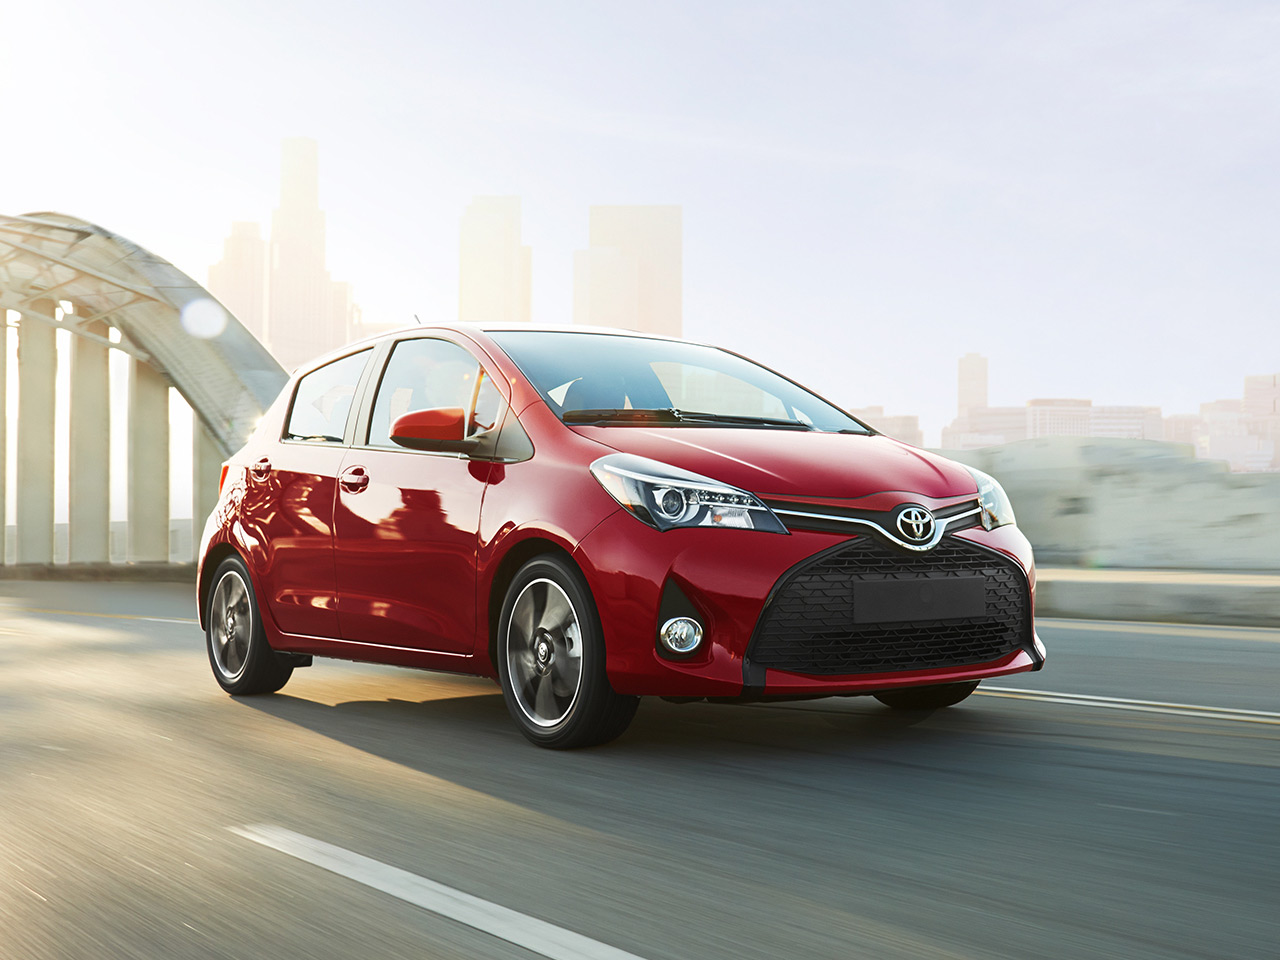 Exterior View Of 2017 Toyota Yaris near San Diego